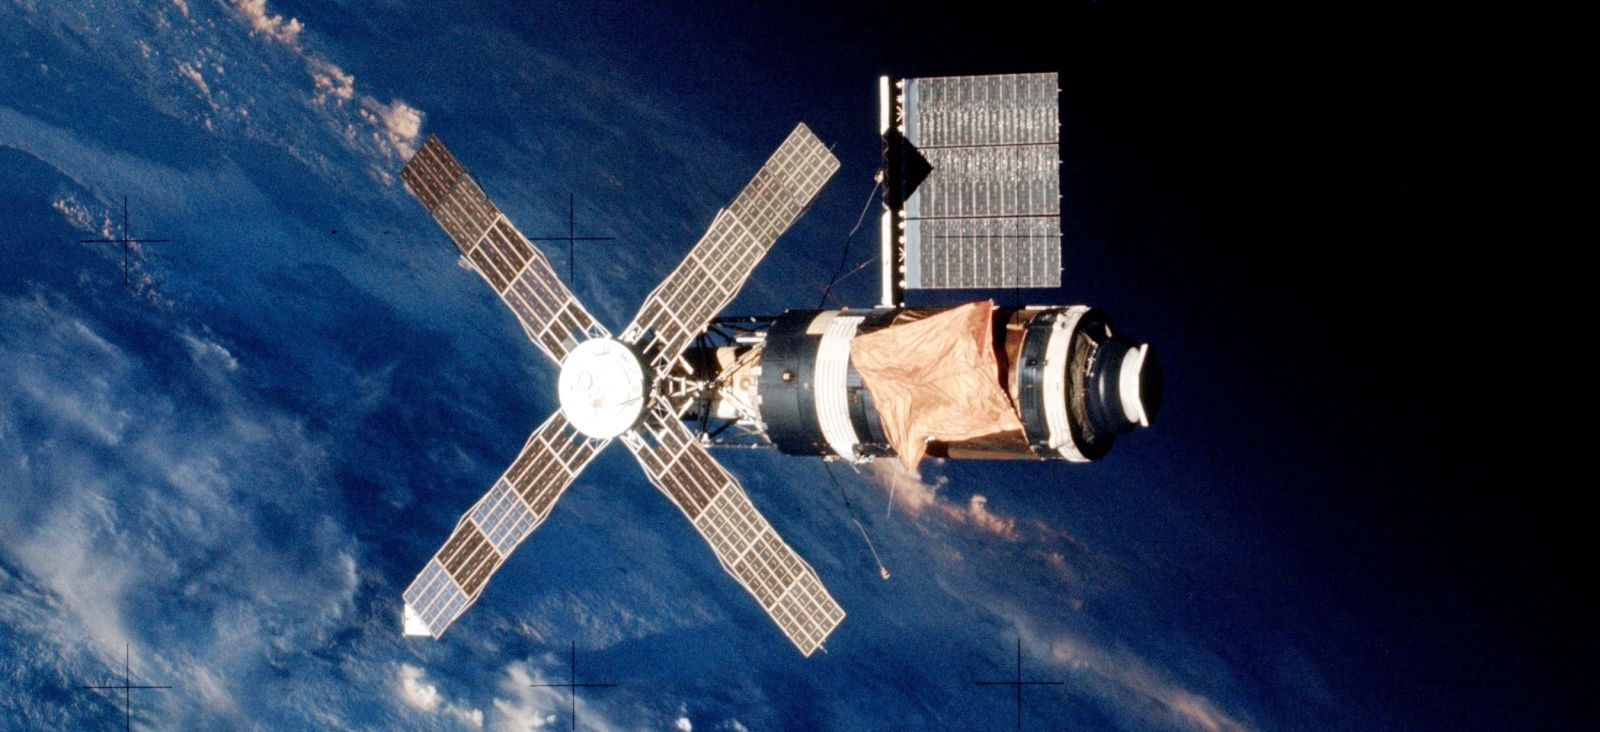 Skylab space station in orbit above Earth photo credit NASA - Copy